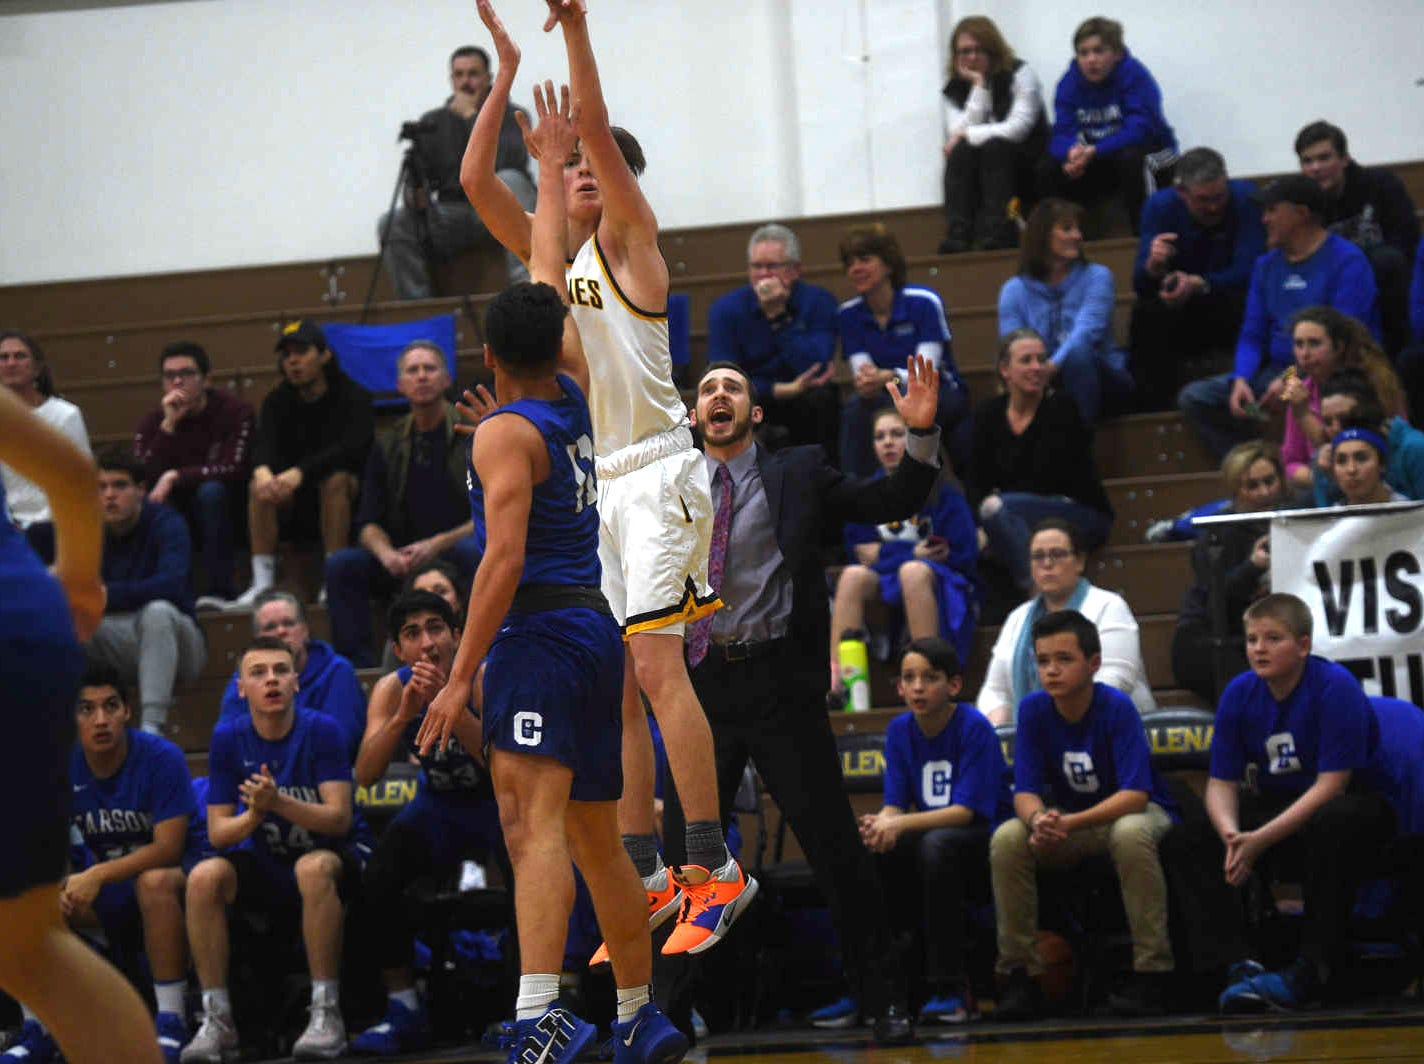 Galena takes on Carson during their basketball game in Reno on Feb. 1, 2019.